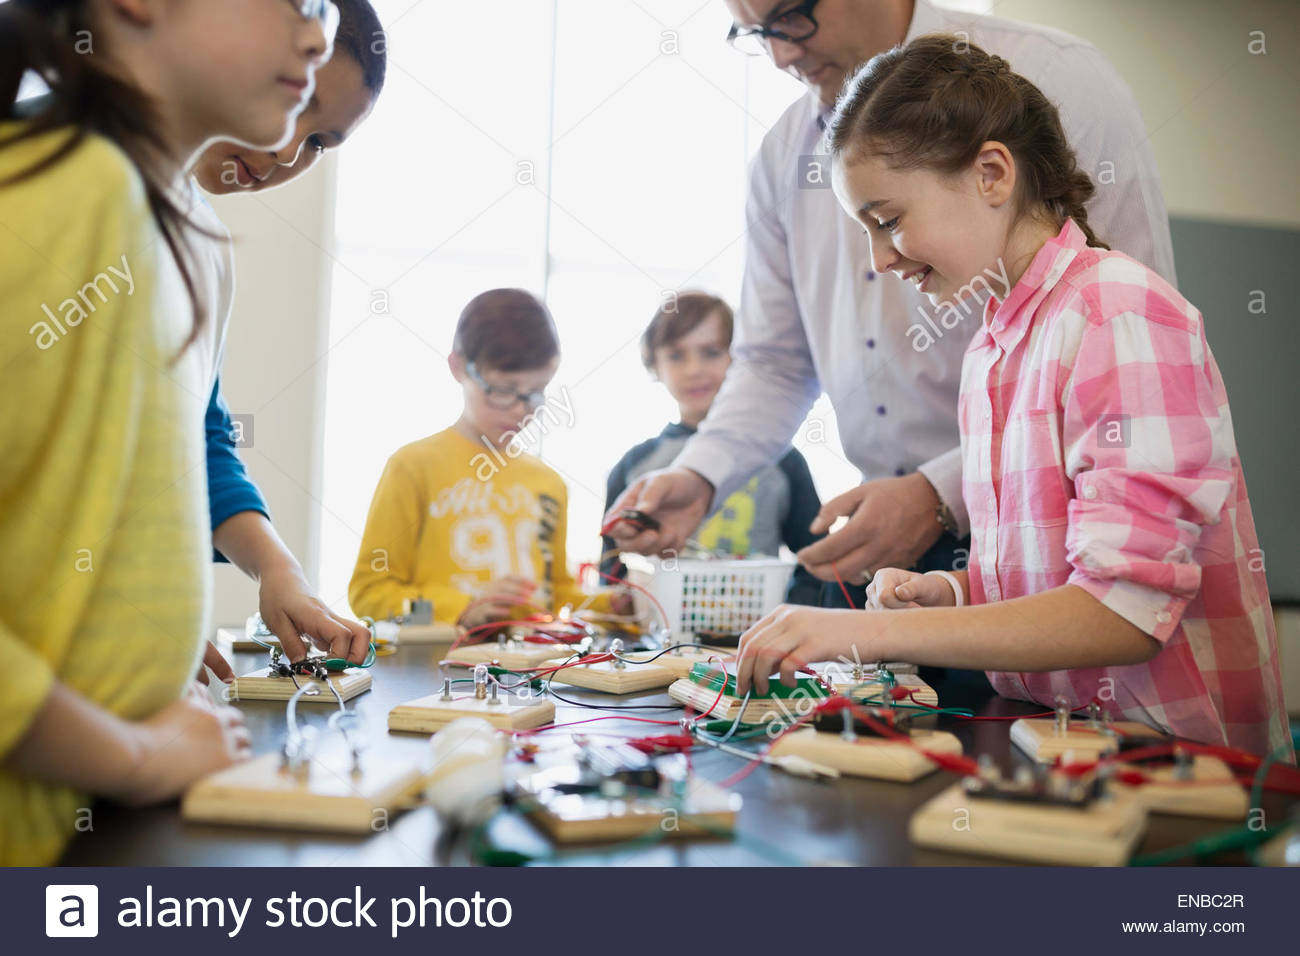 Students and teacher assembling circuit electronics at table - Stock Image